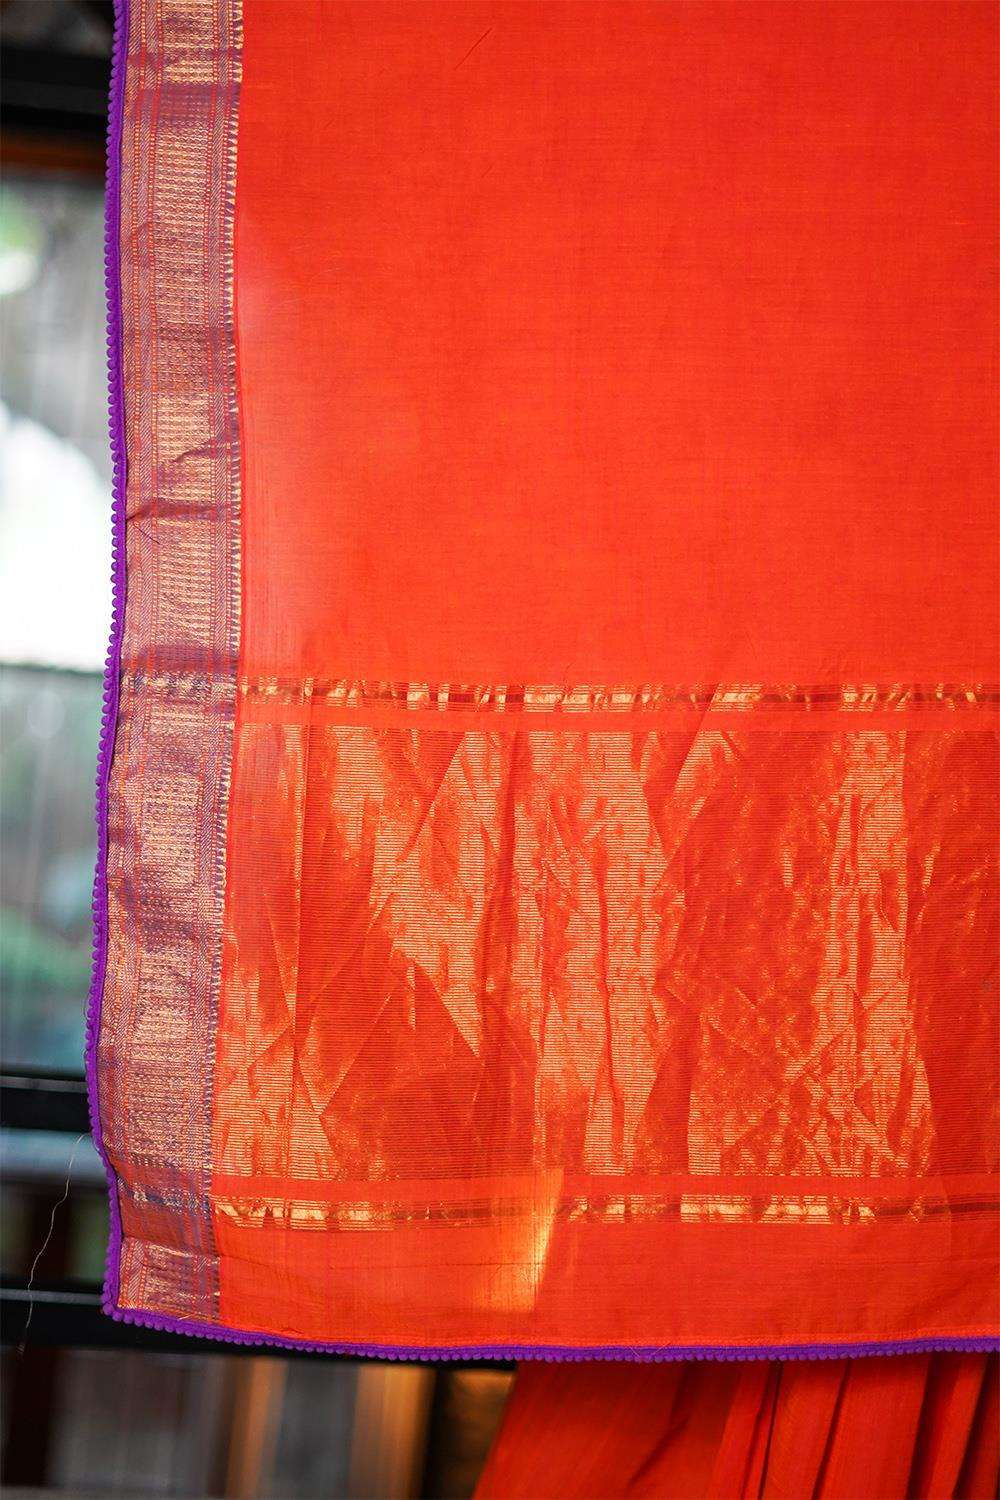 Orange Maheshwari handloom silk cotton saree with purple zari border and pom pom edging